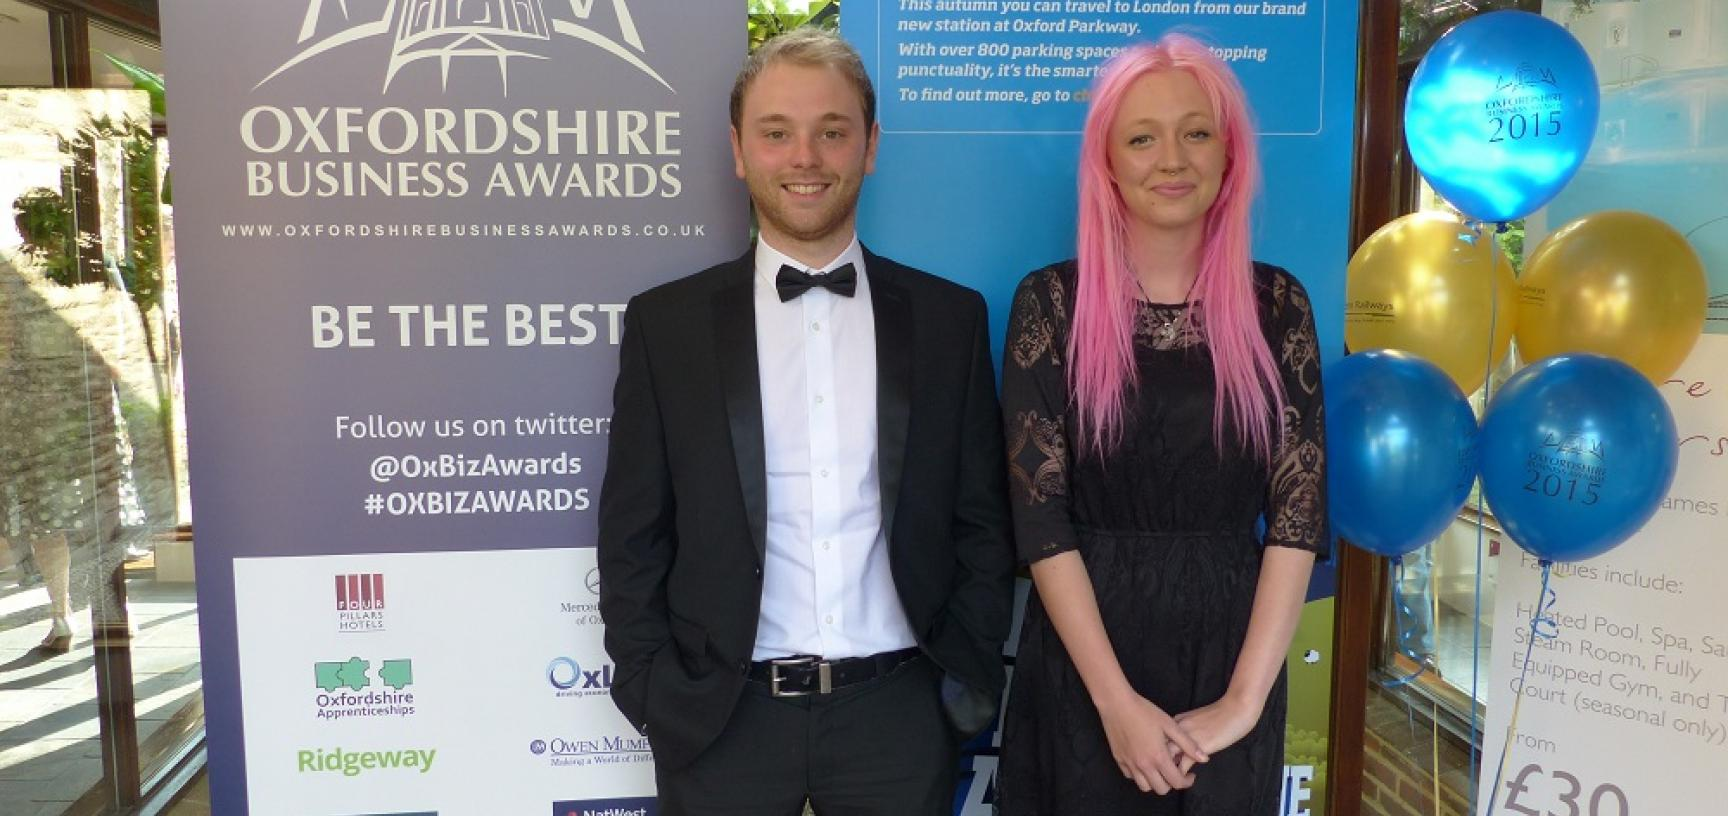 Oxfordshire Business Awards